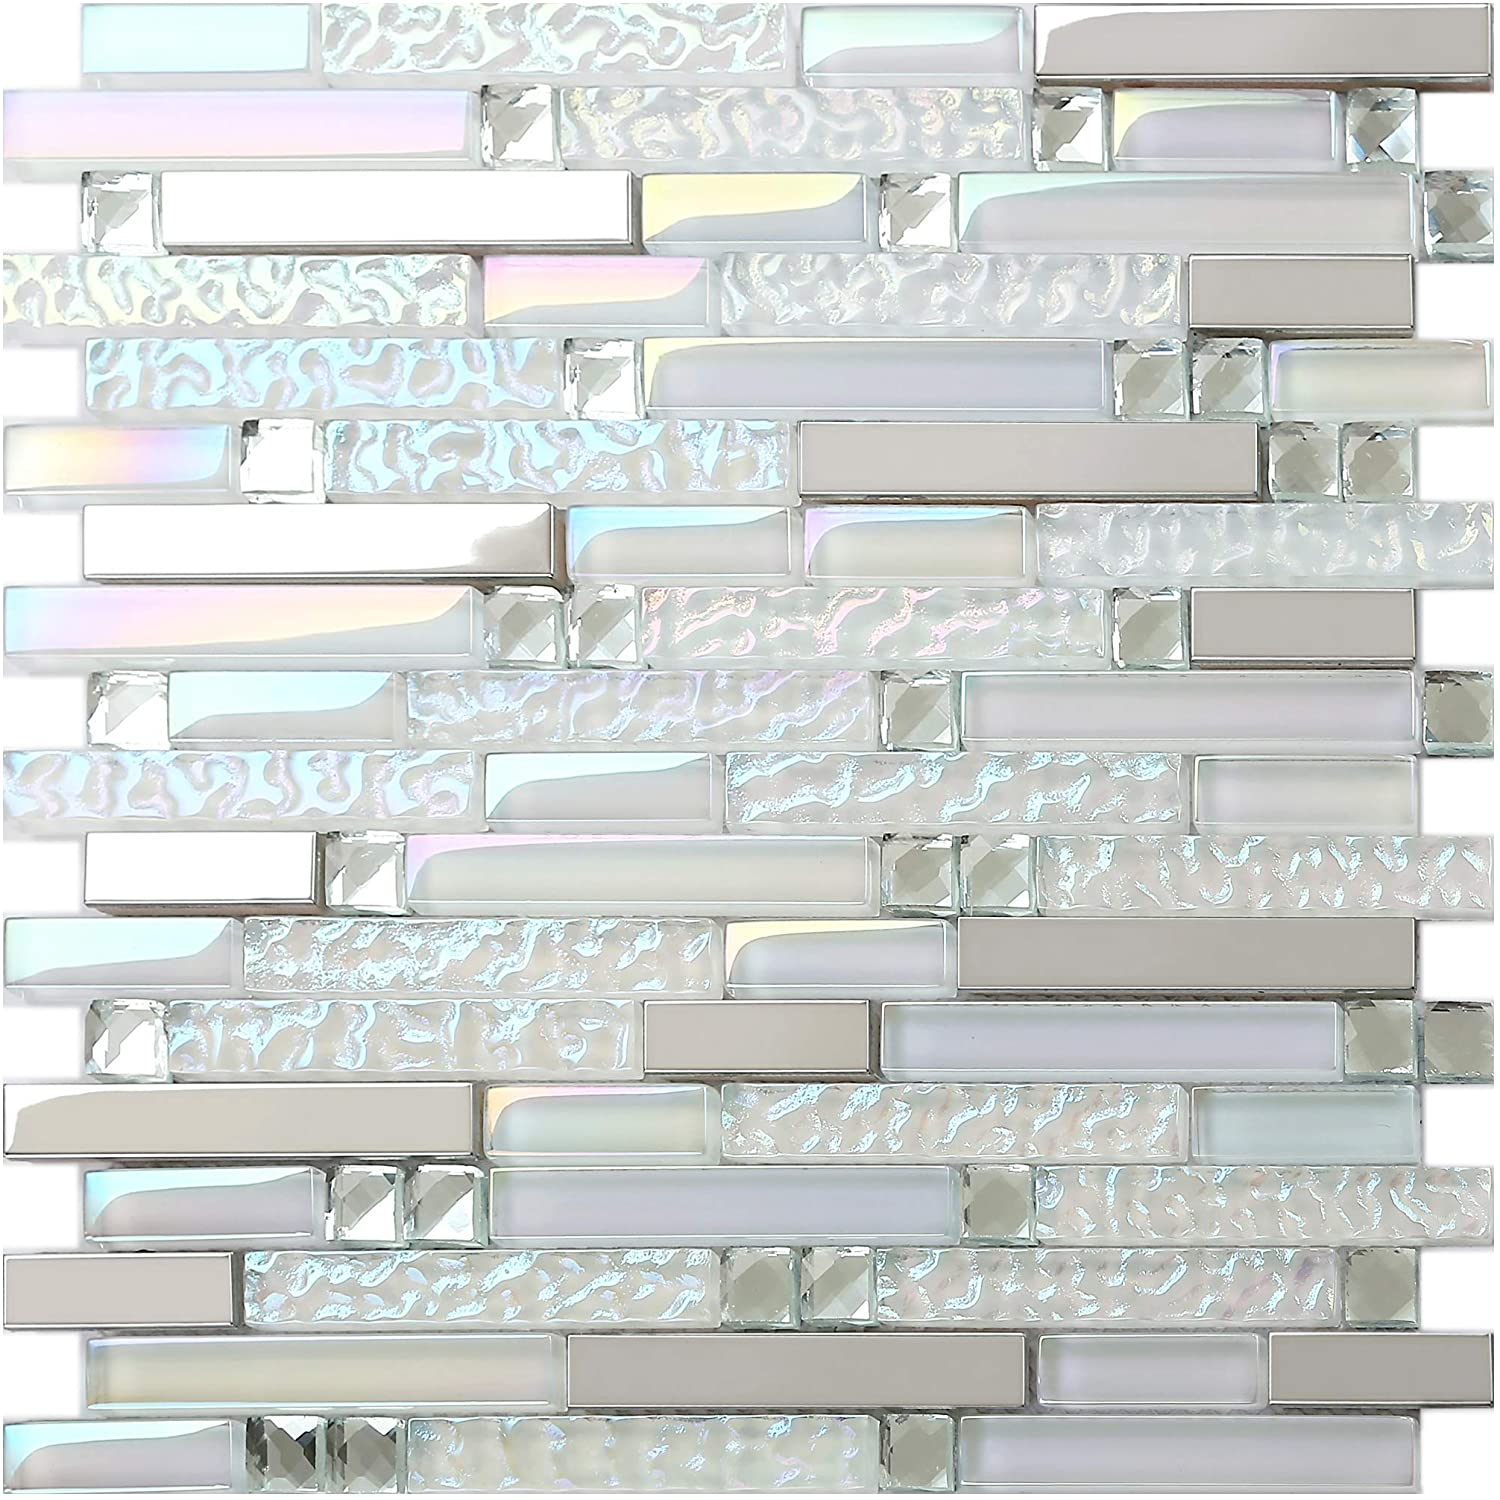 Super White Glass and Metal Strip Mosaic Tiles 3 x 12 SAMPLE